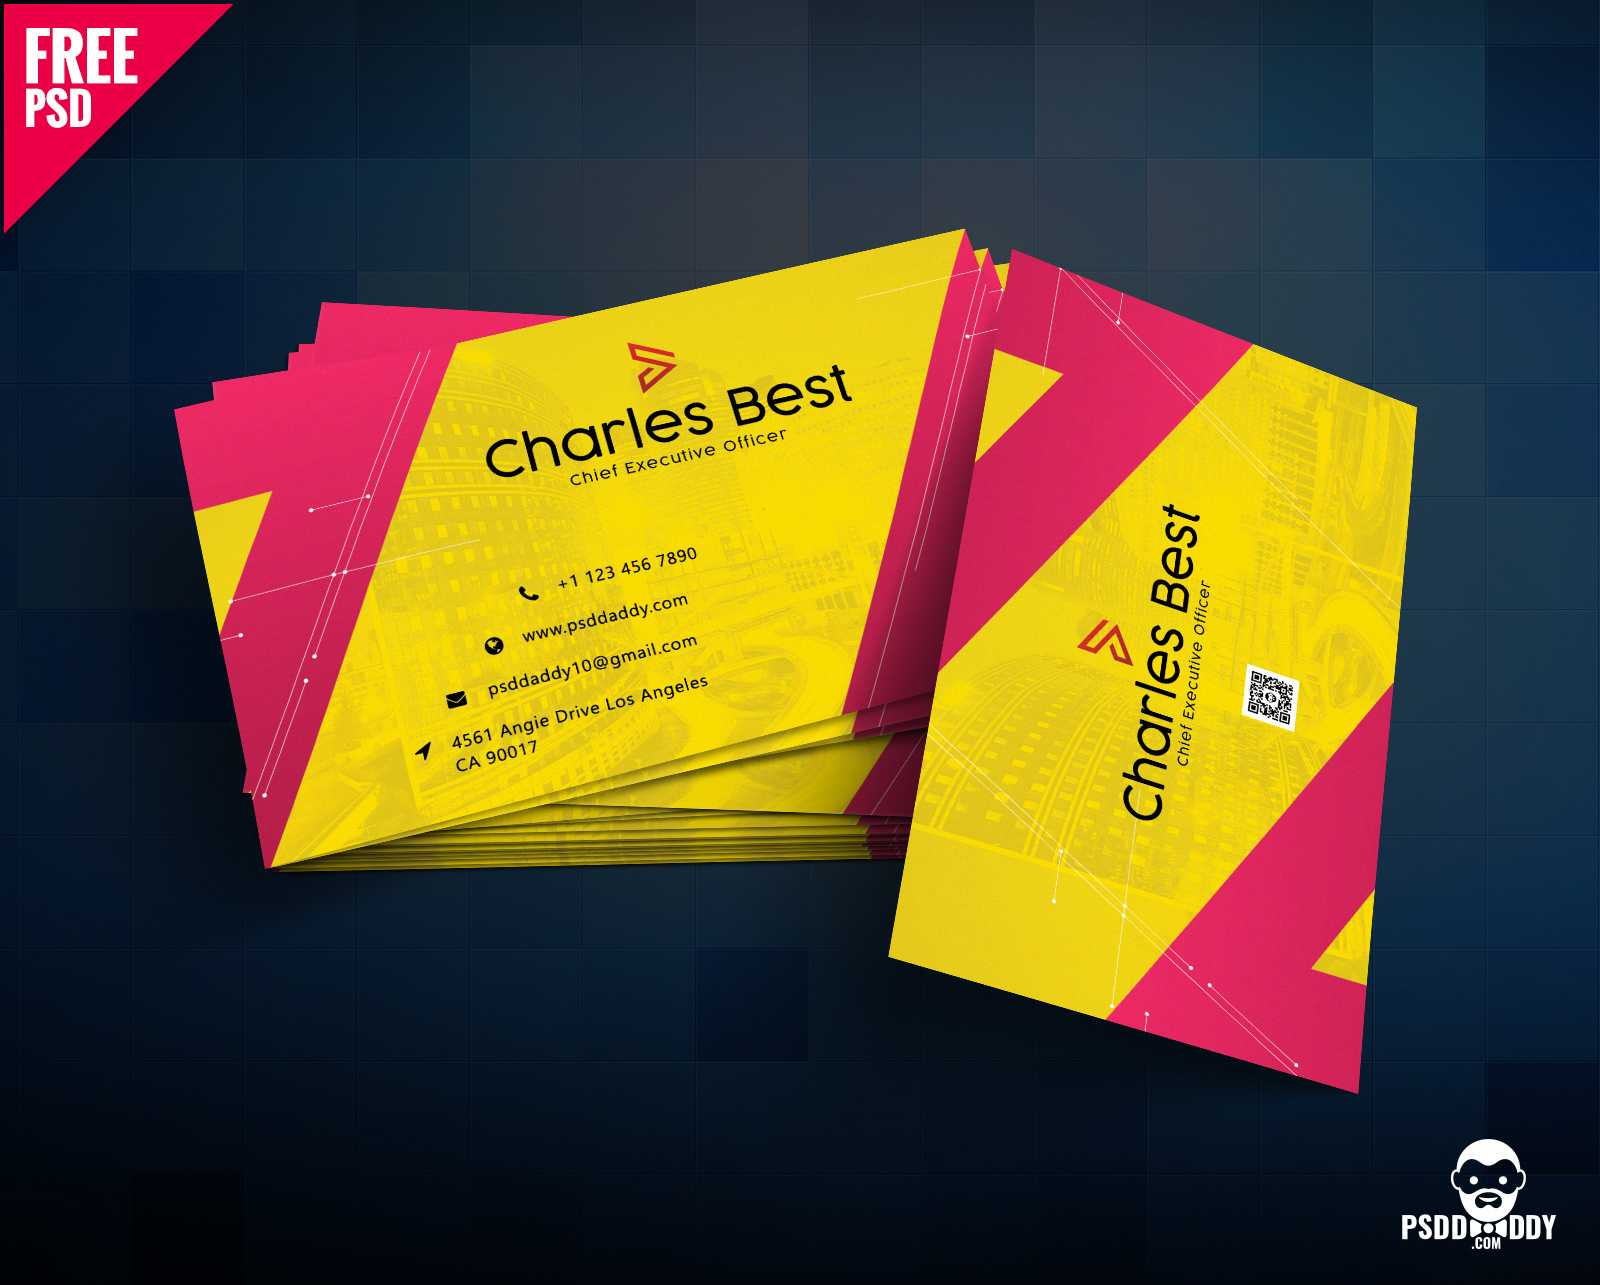 Download] Creative Business Card Free Psd | Psddaddy Intended For Business Card Size Photoshop Template